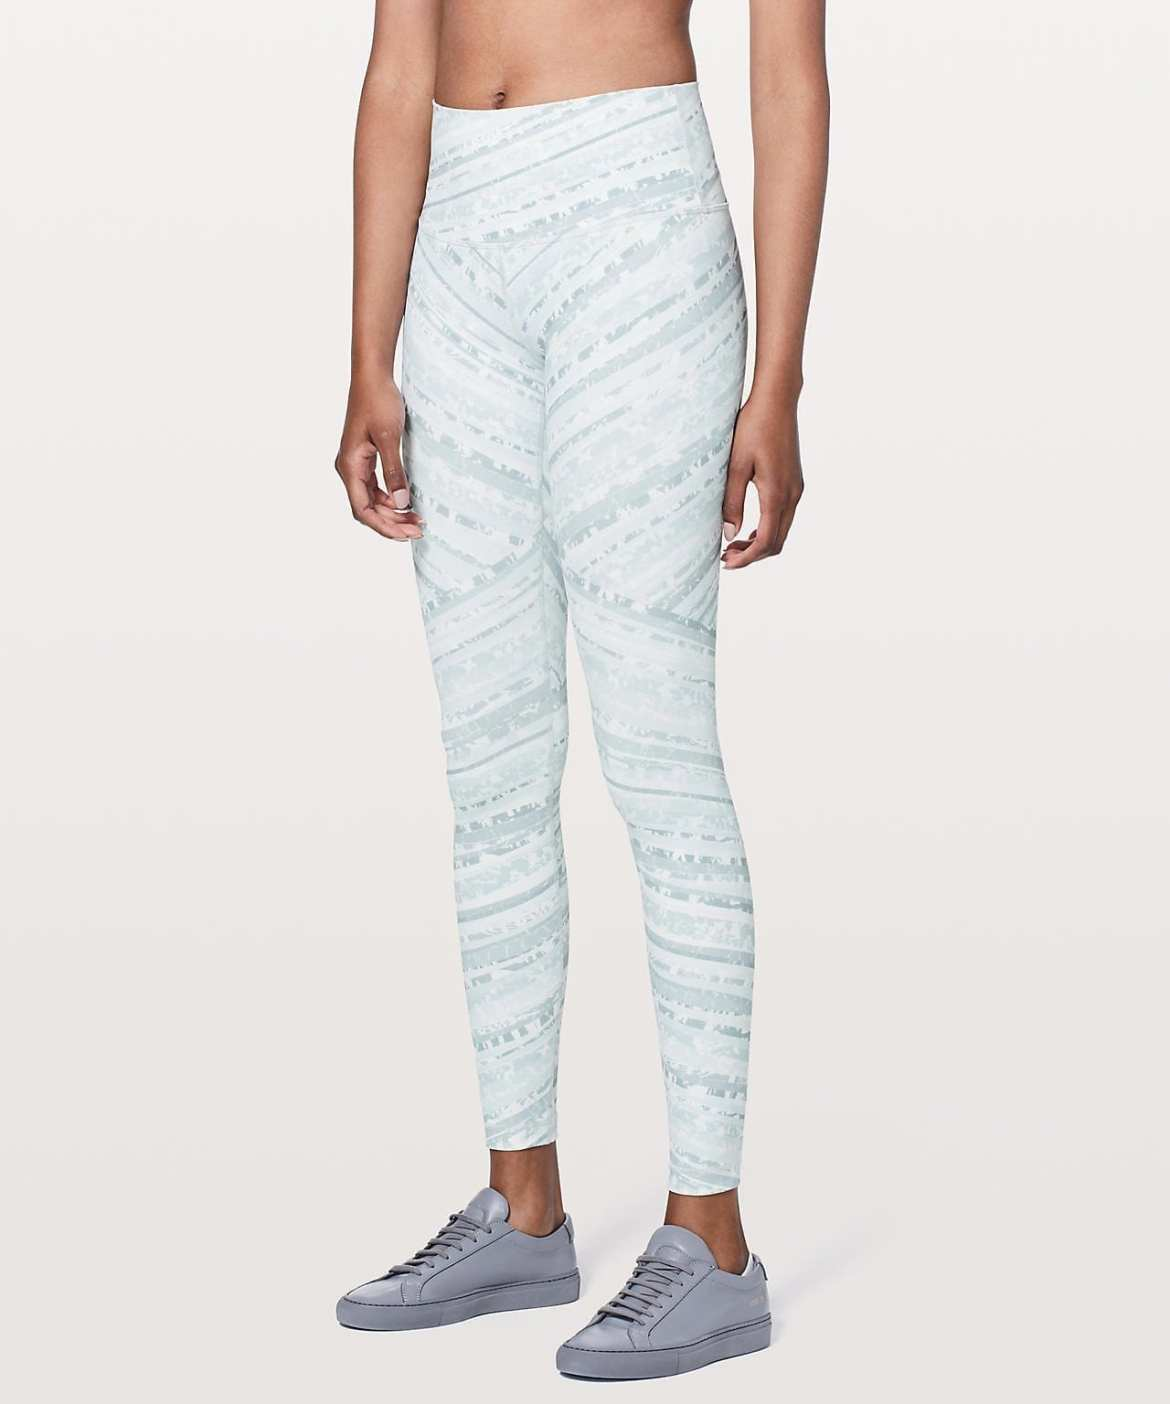 Lululemon New Product Upload - Wunder Under Hi-Rise Tight - Whirlwind Wunder Under White